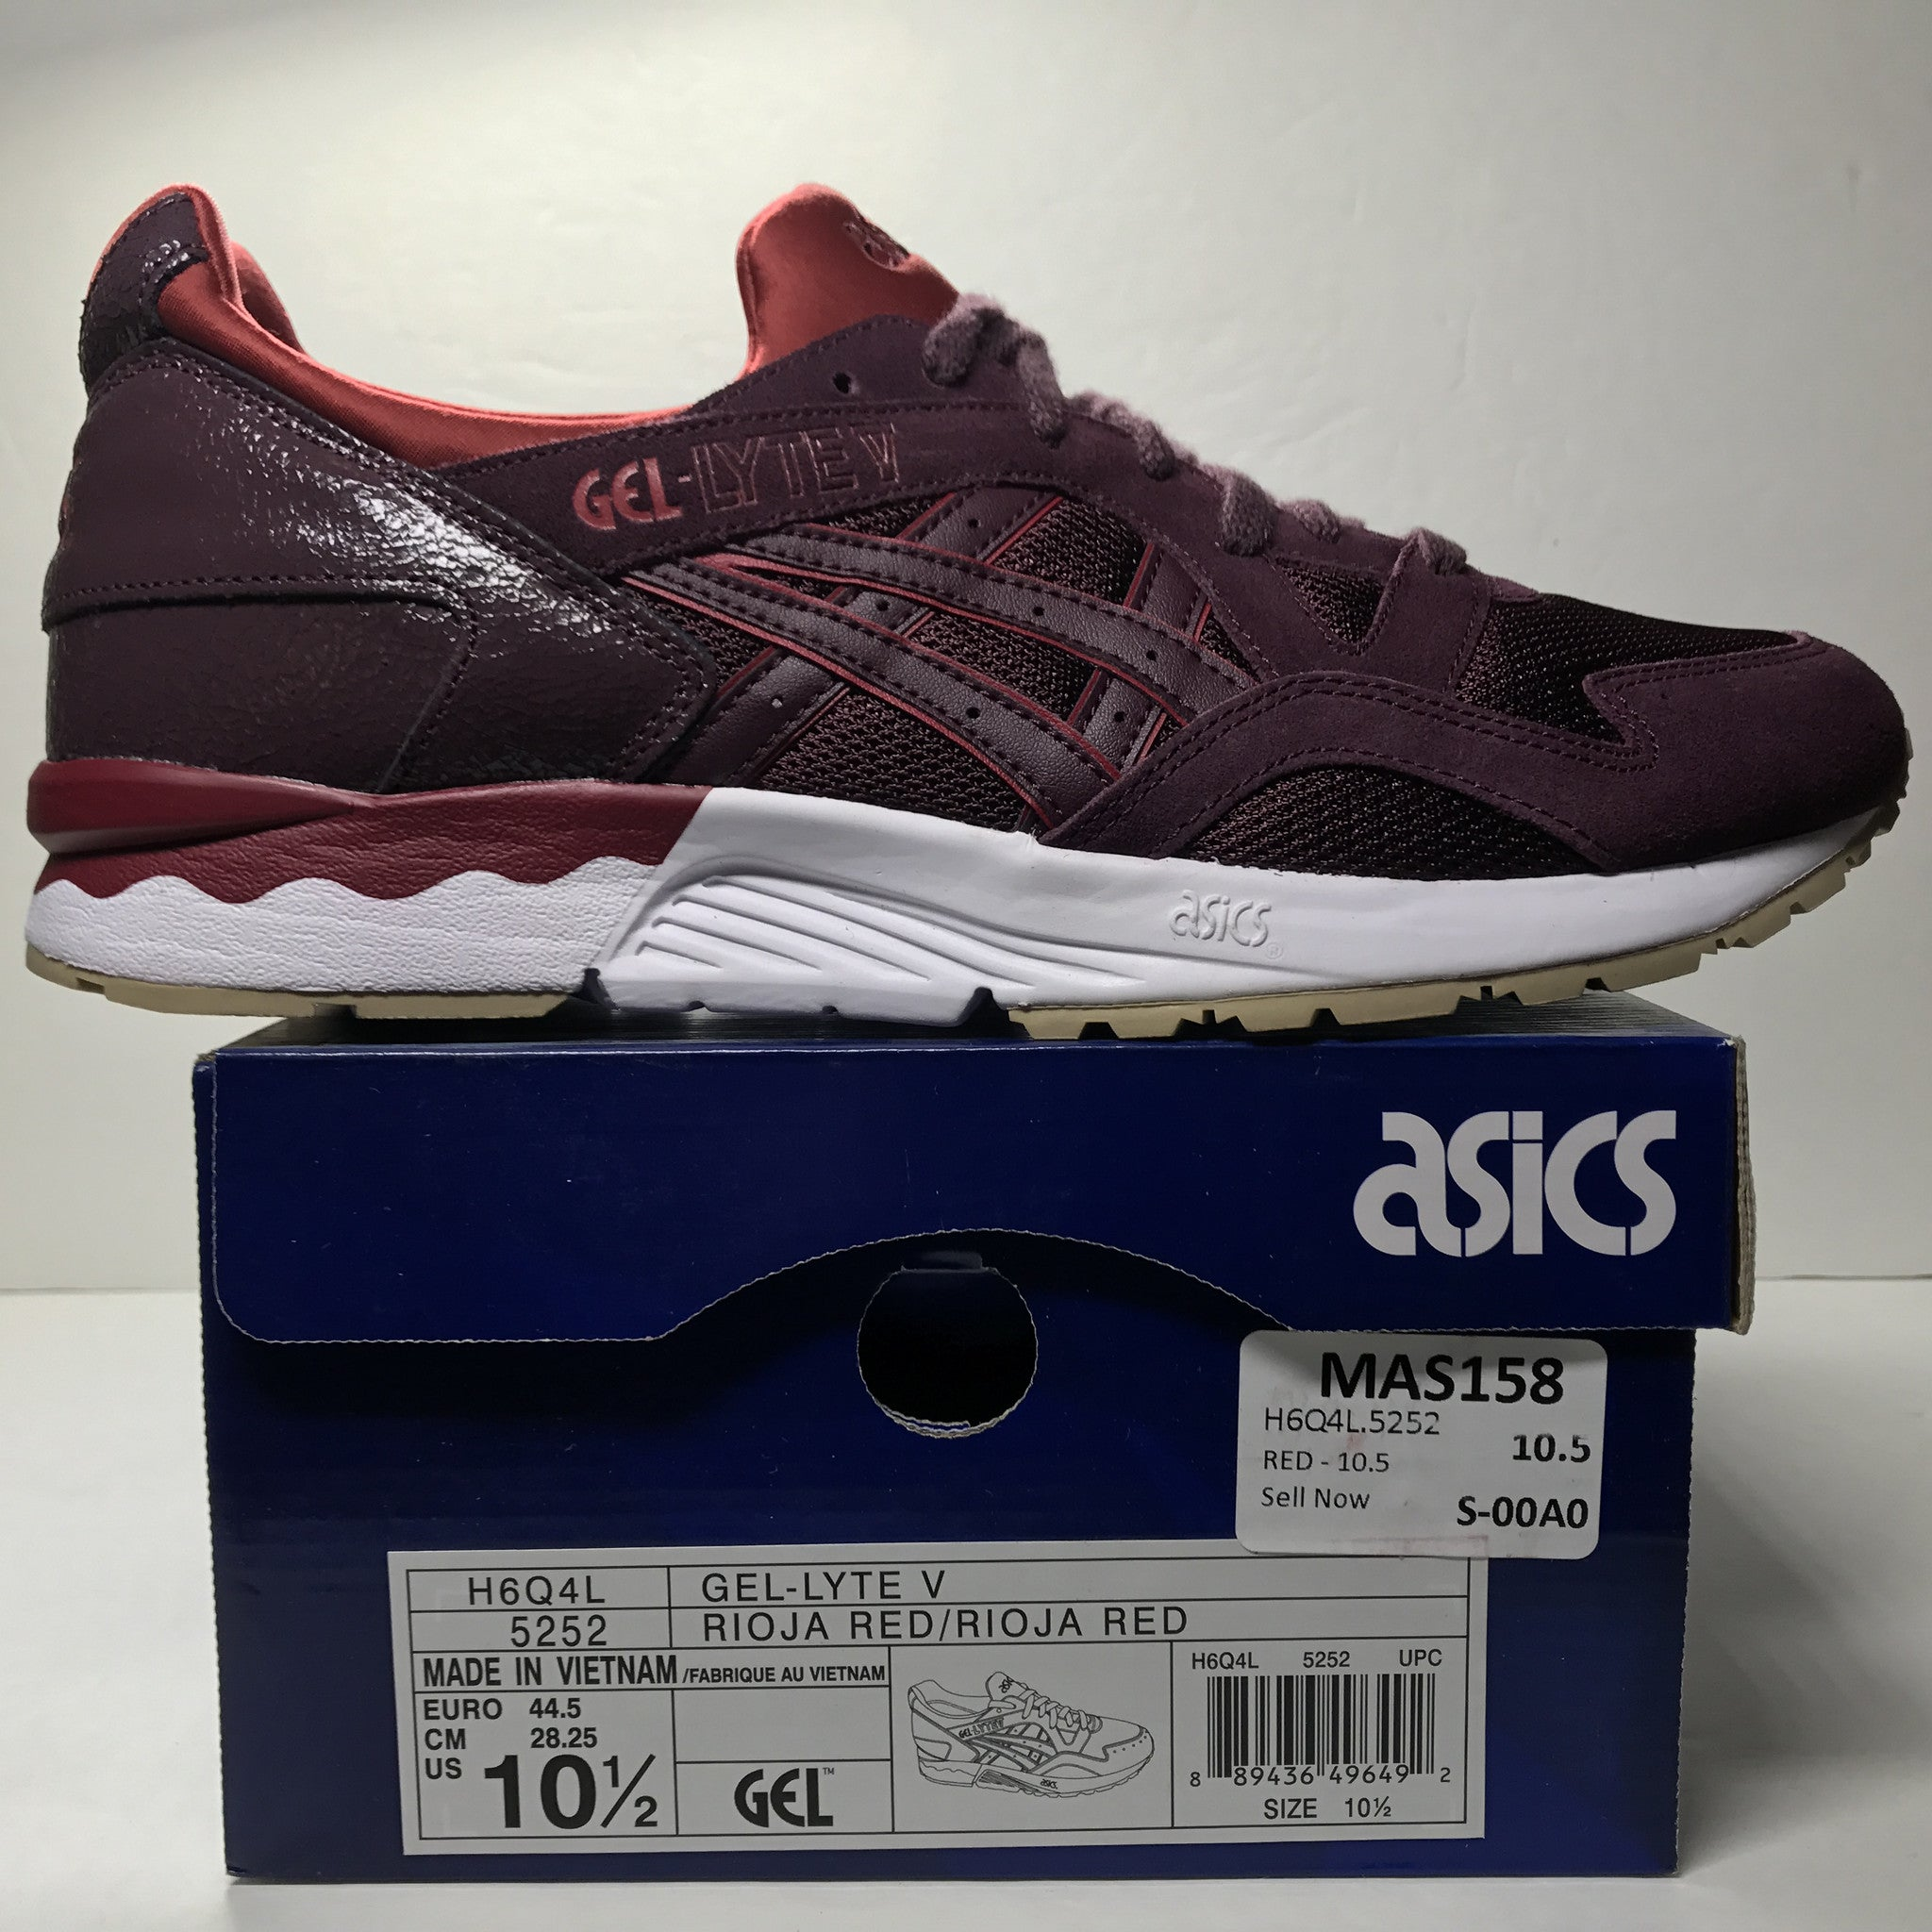 8341445e04be ... DS Asics Gel Lyte V Leather Rioja Red Size 10.5 - DOPEFOOT ...